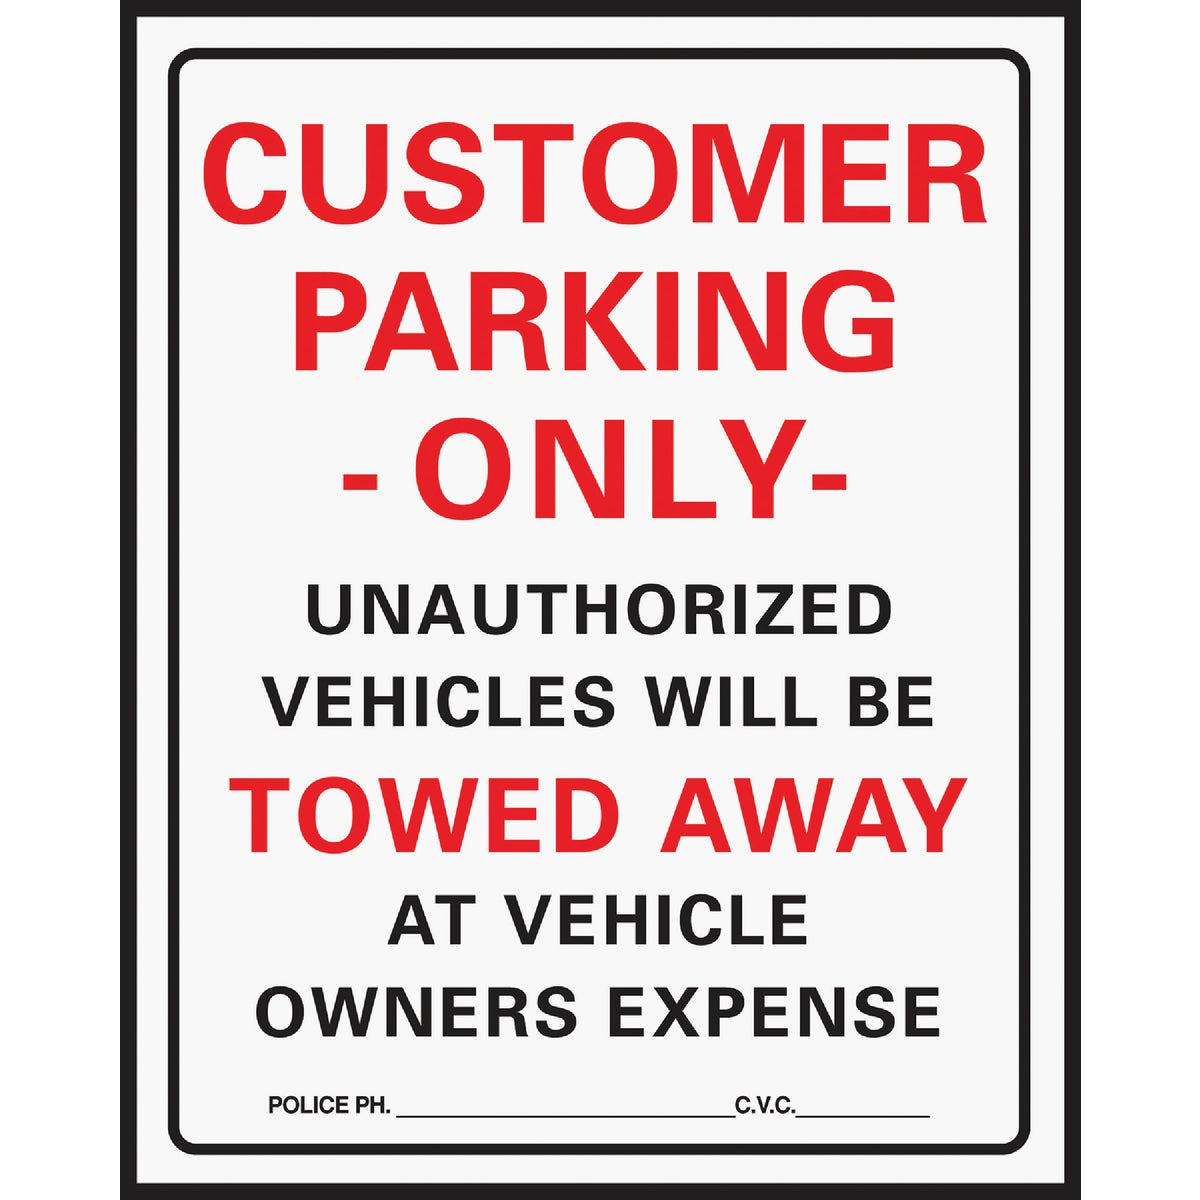 15X19 CUSTOMER PRKG SIGN